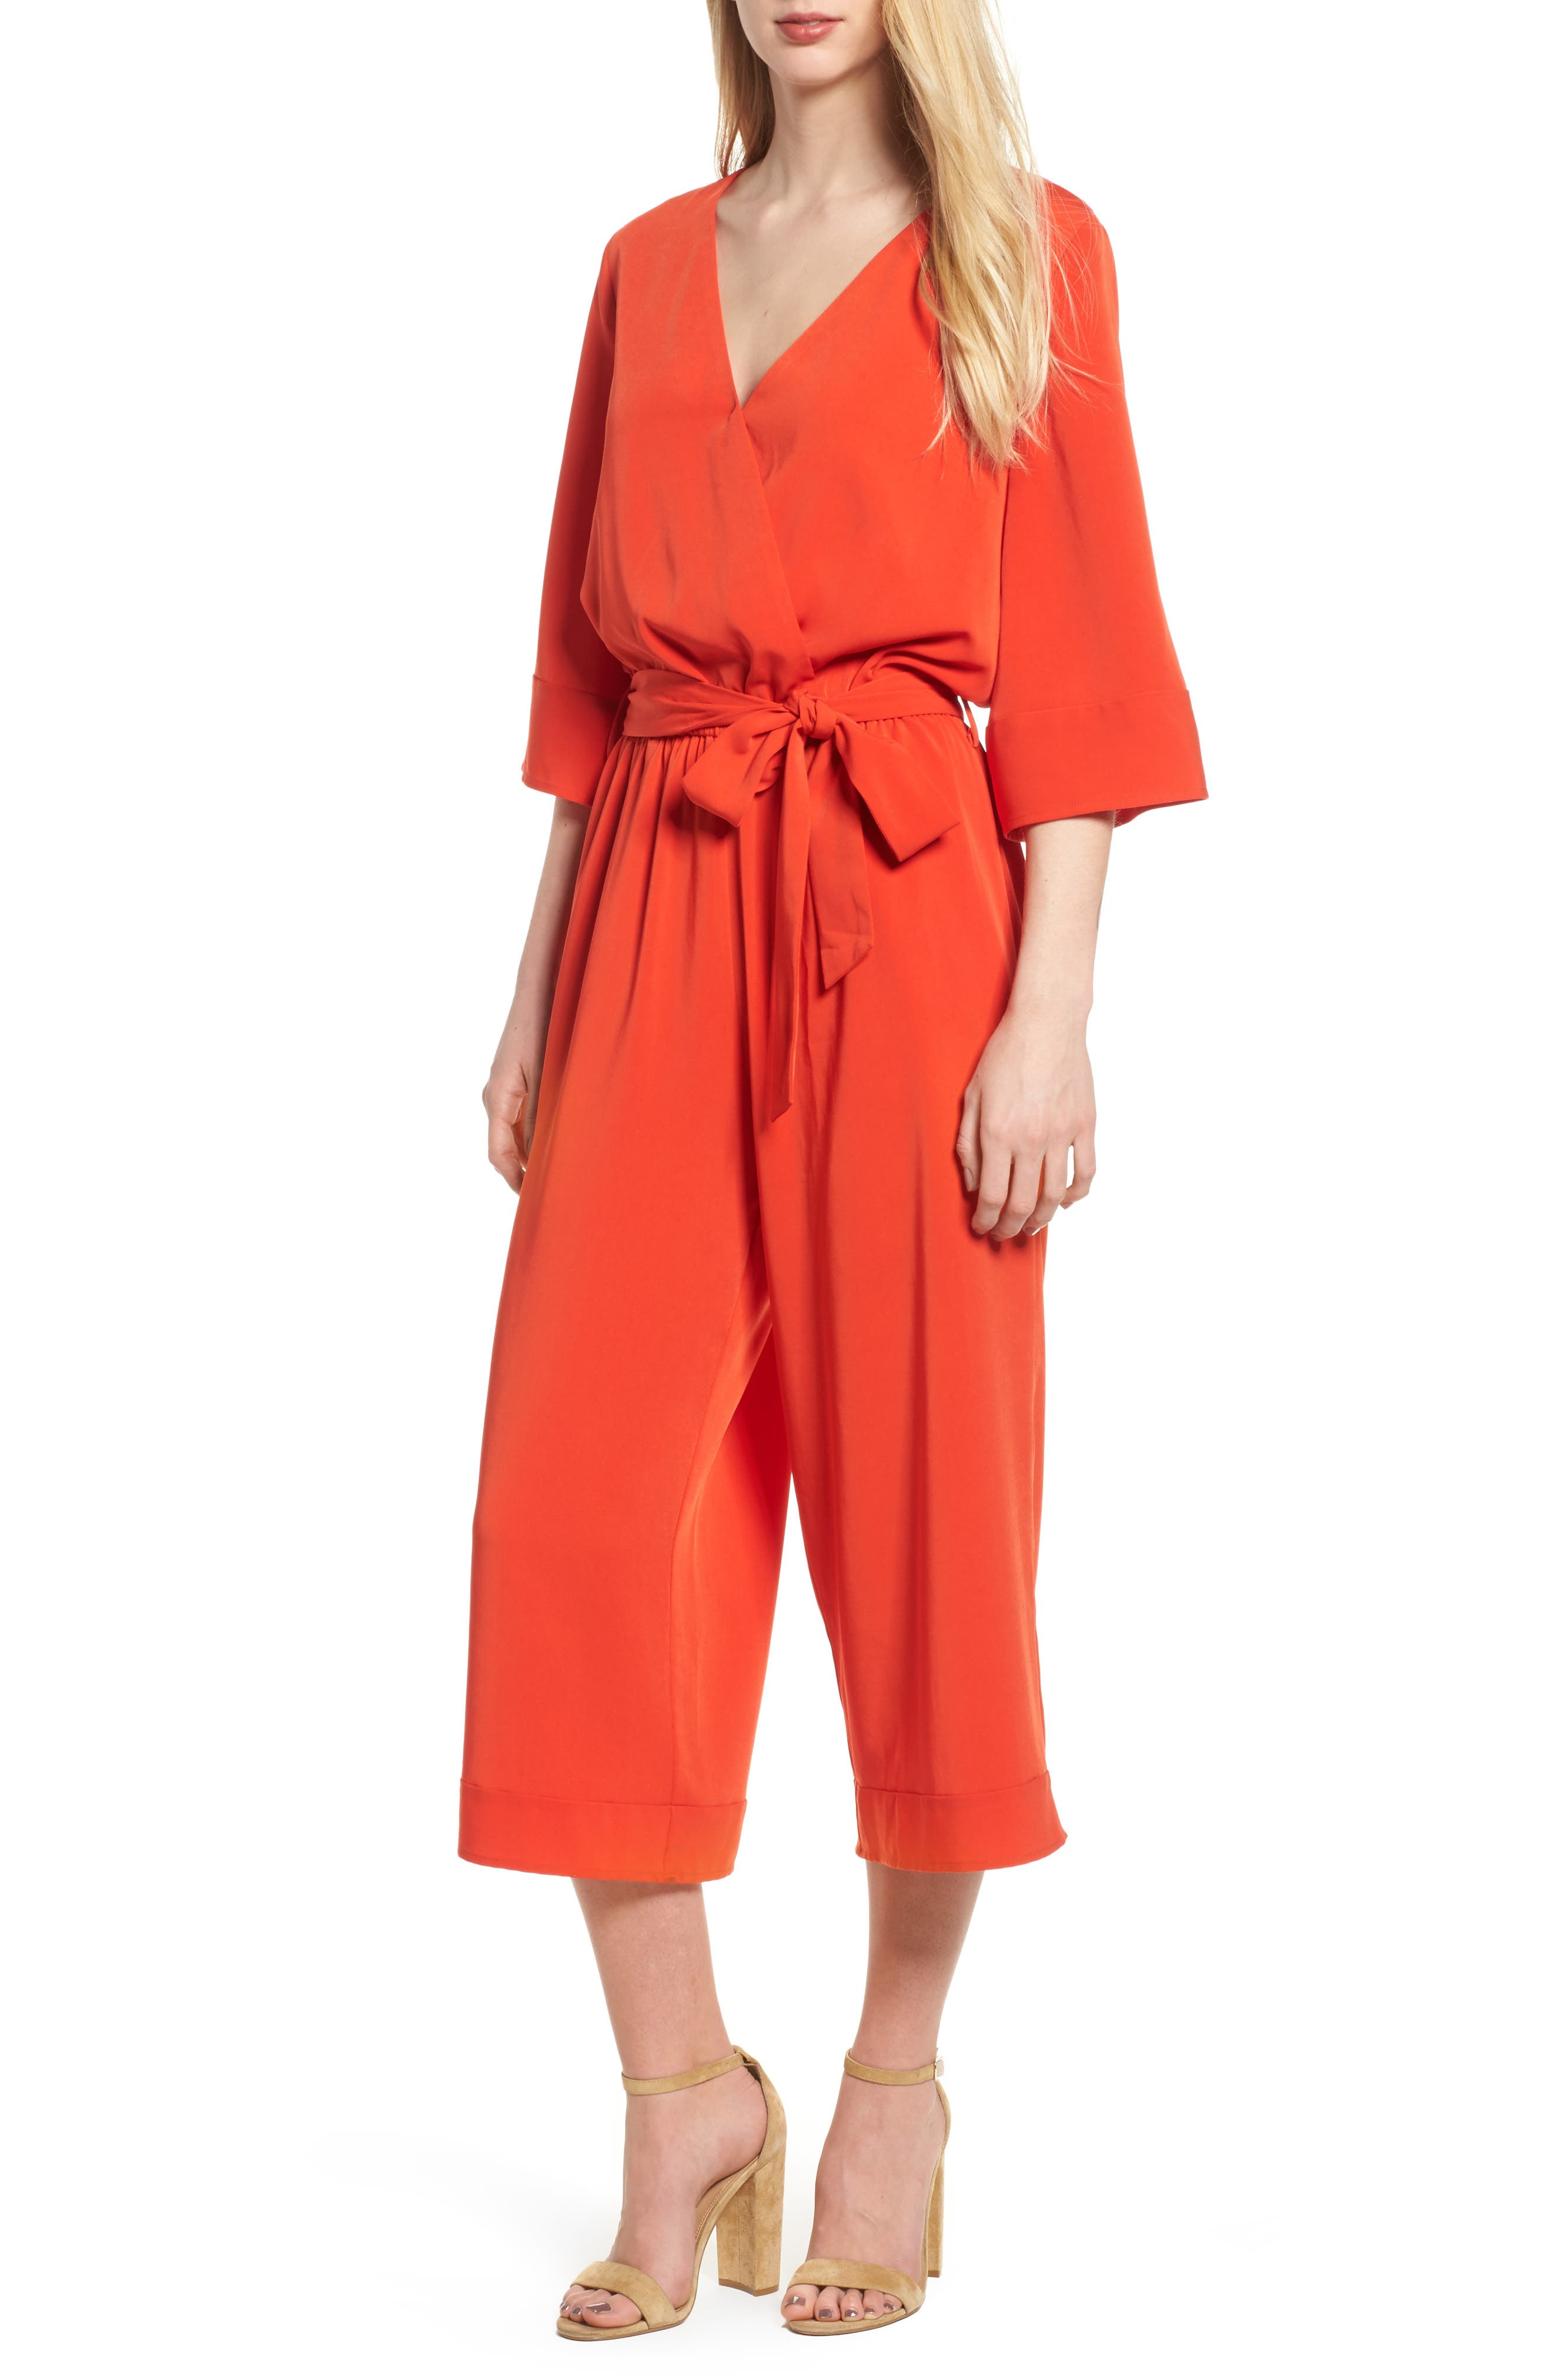 Bishop + Young Yacht Party Romper,                             Main thumbnail 1, color,                             Poppy Pop